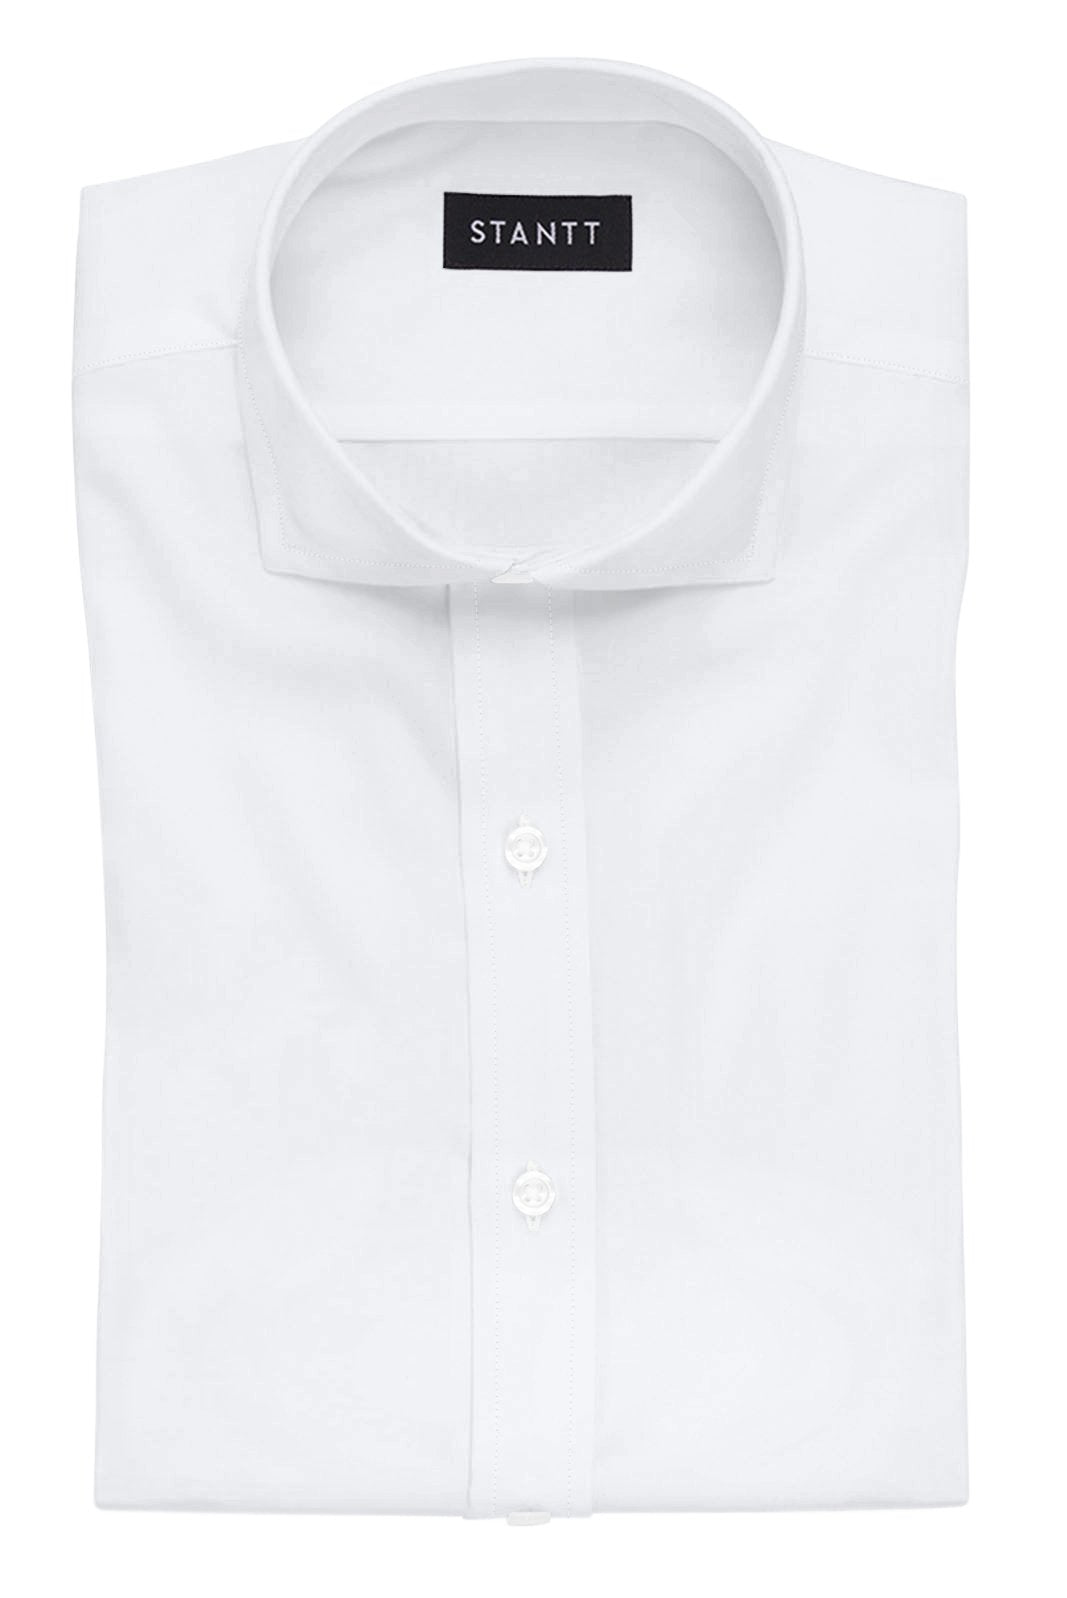 Performance White: Cutaway Collar, French Cuff